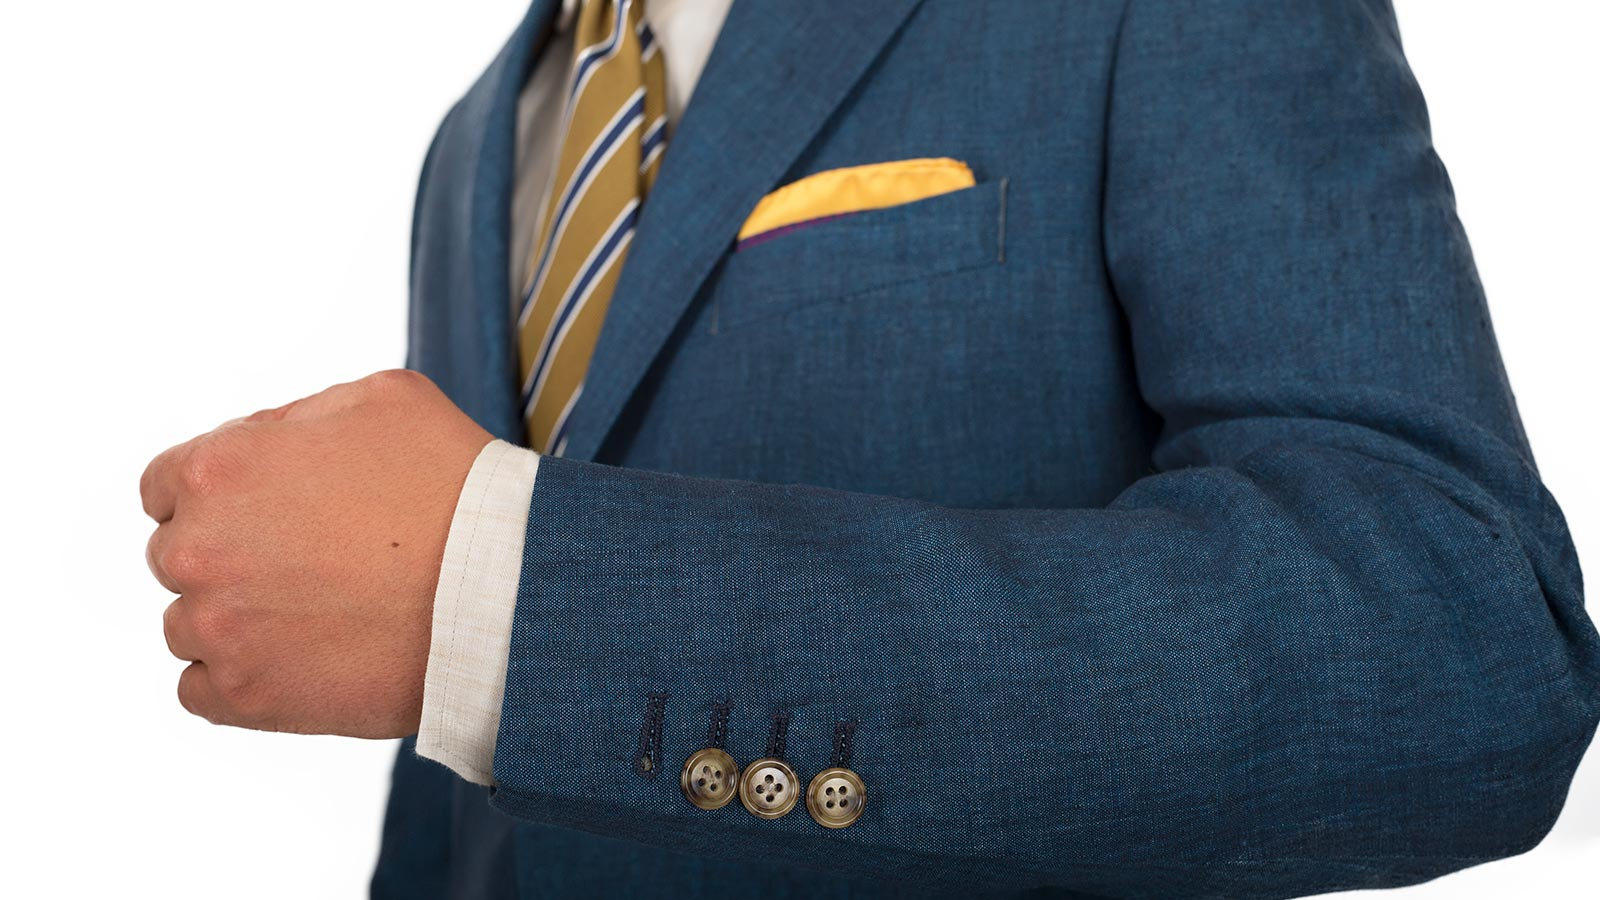 Teal Blue Linen Suit - slider image 1